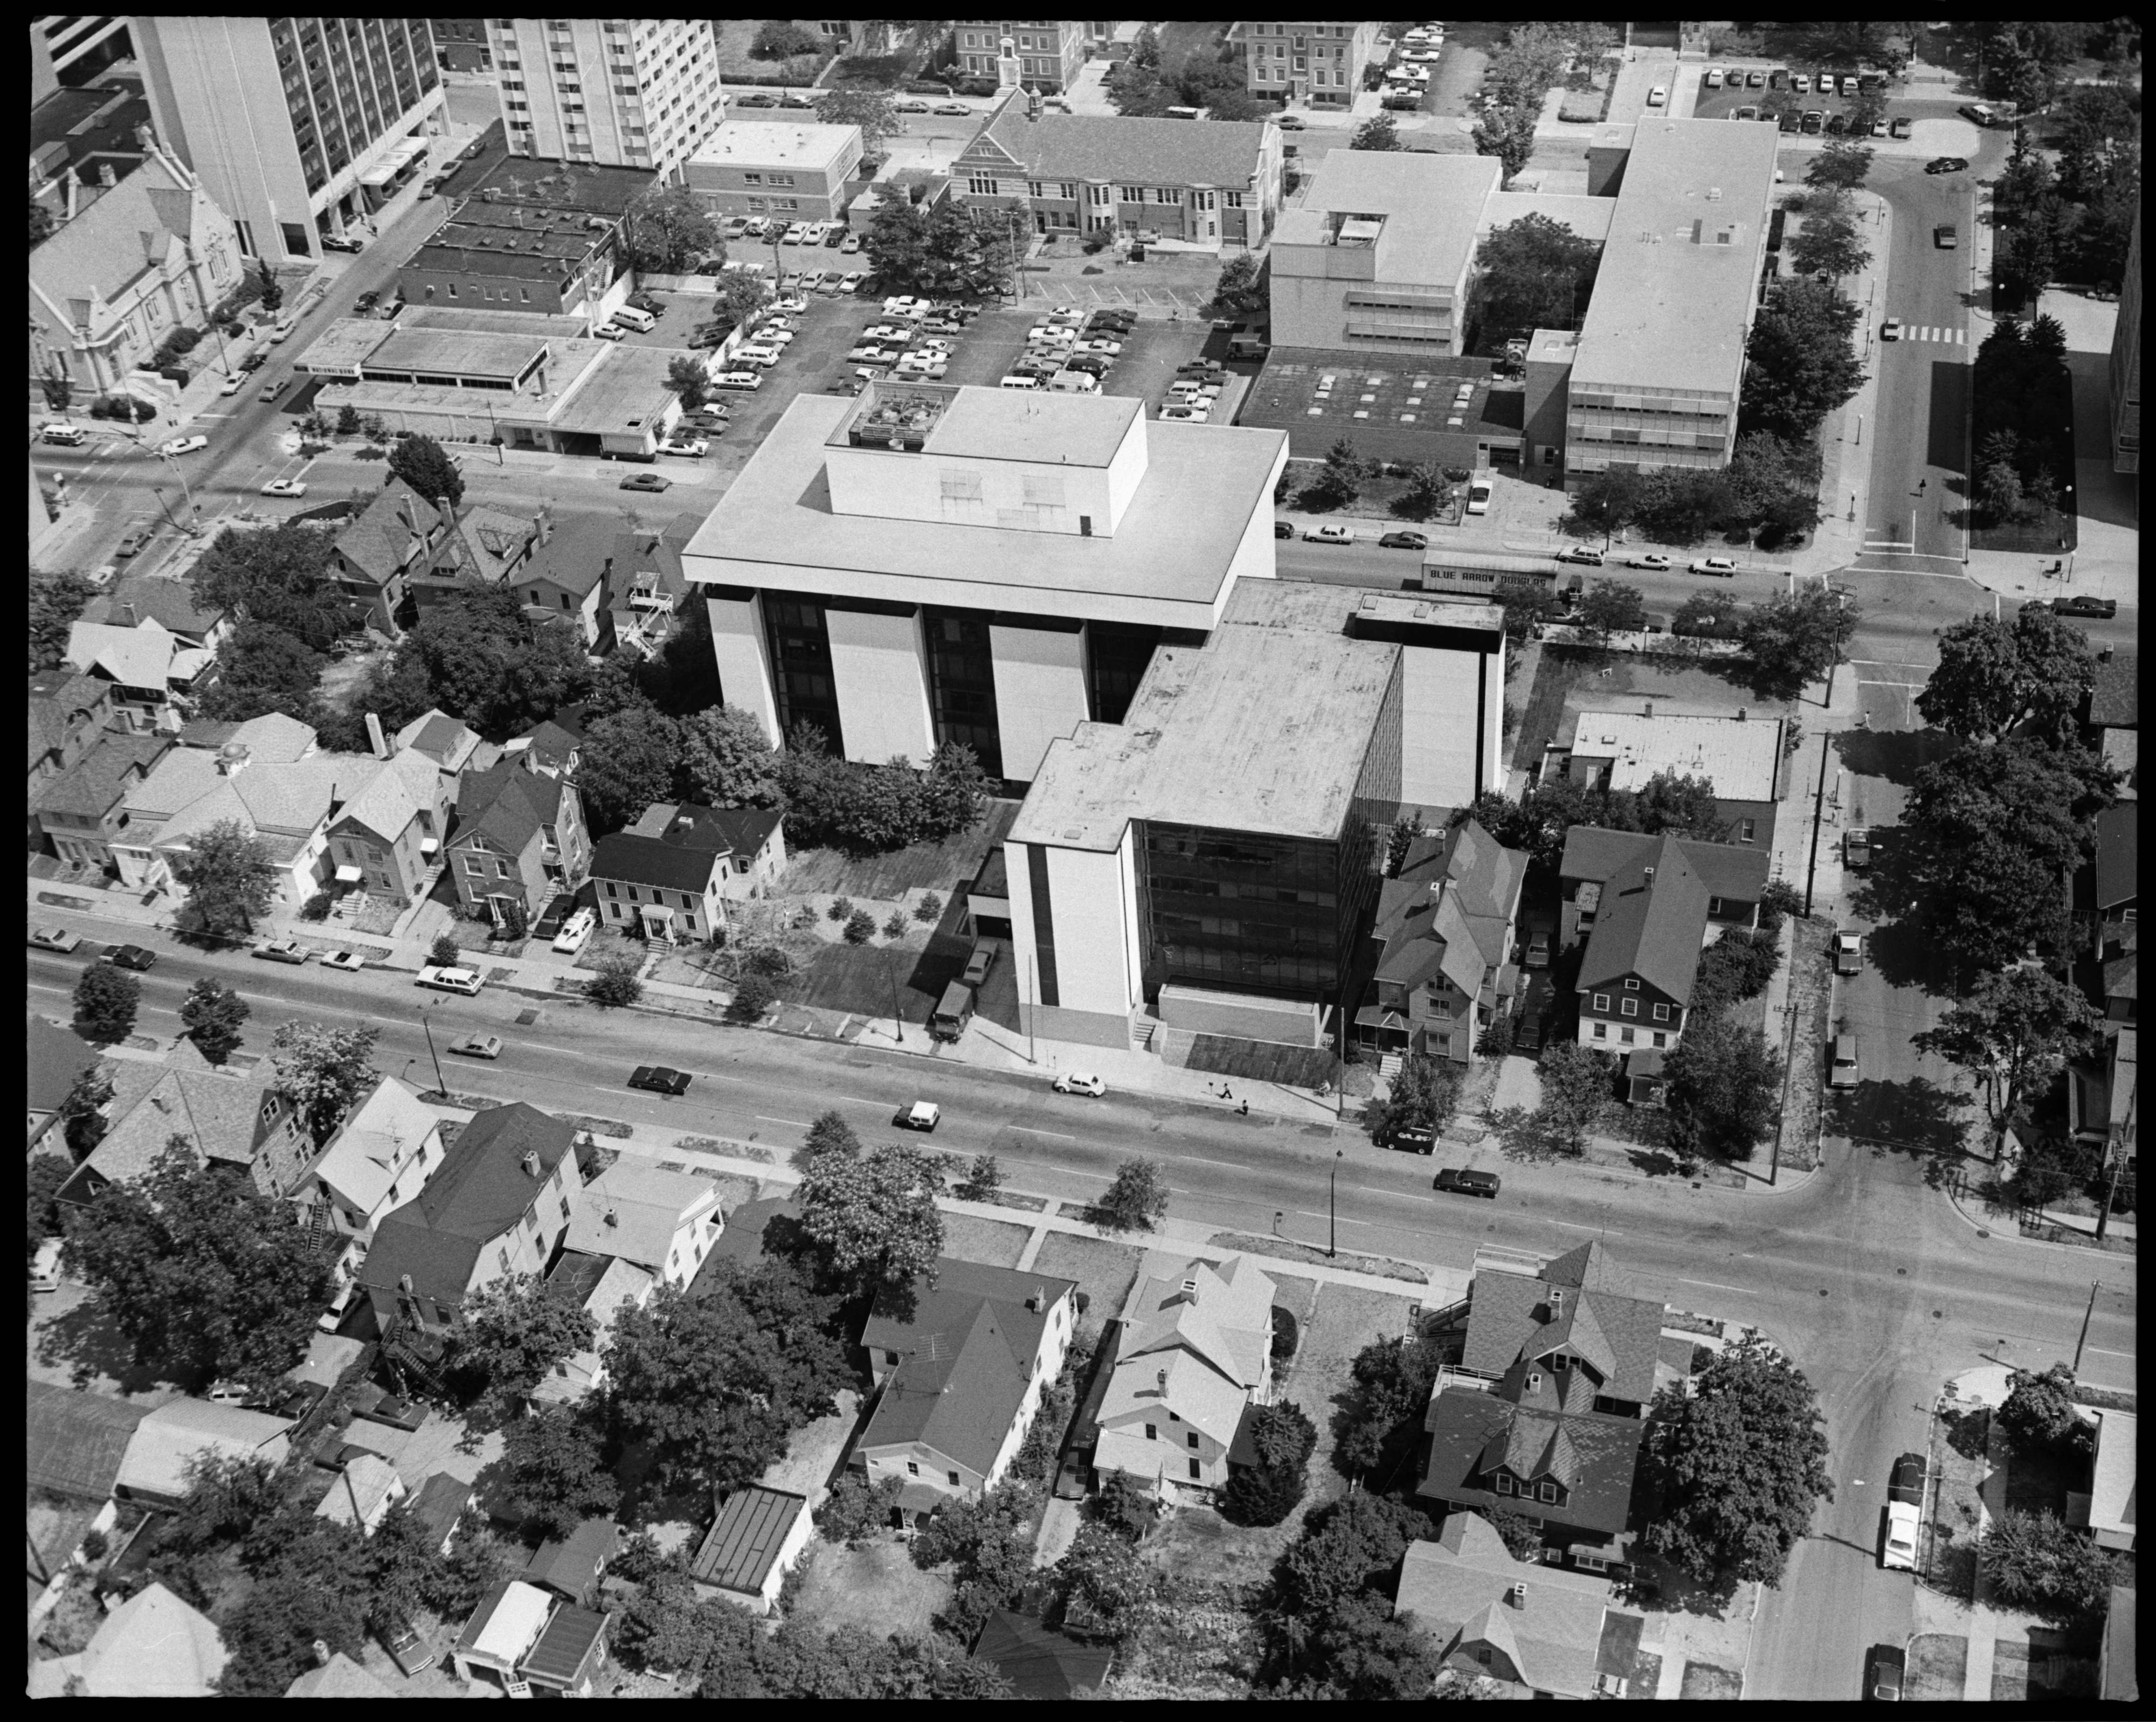 Aerial Photograph of Institute for Social Research Building Addition, University of Michigan, September 1976 image